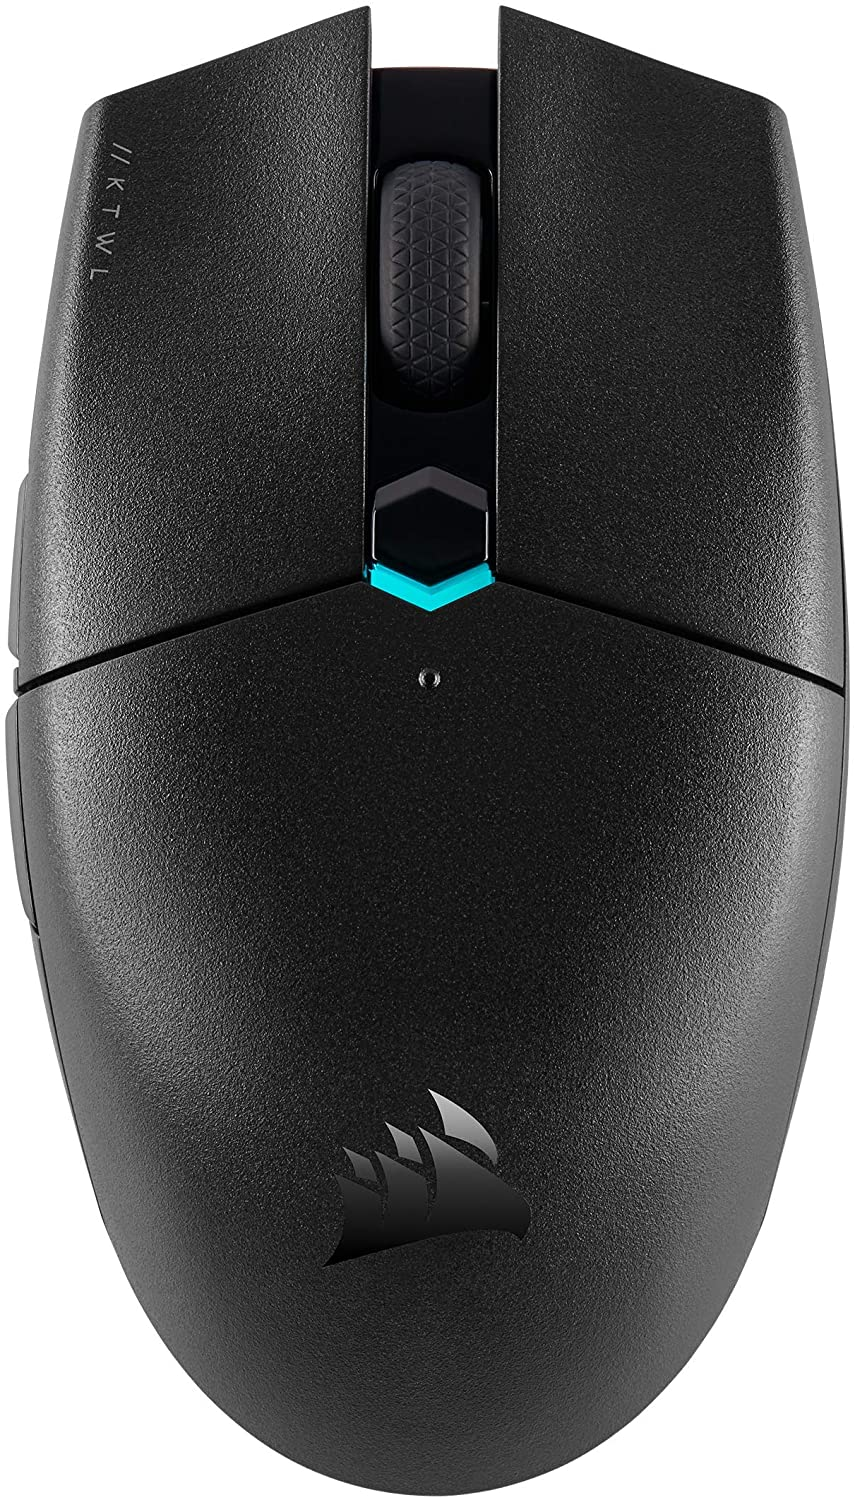 10 Best Gaming Mouse Under $50 - 2021 Buying Guide 7